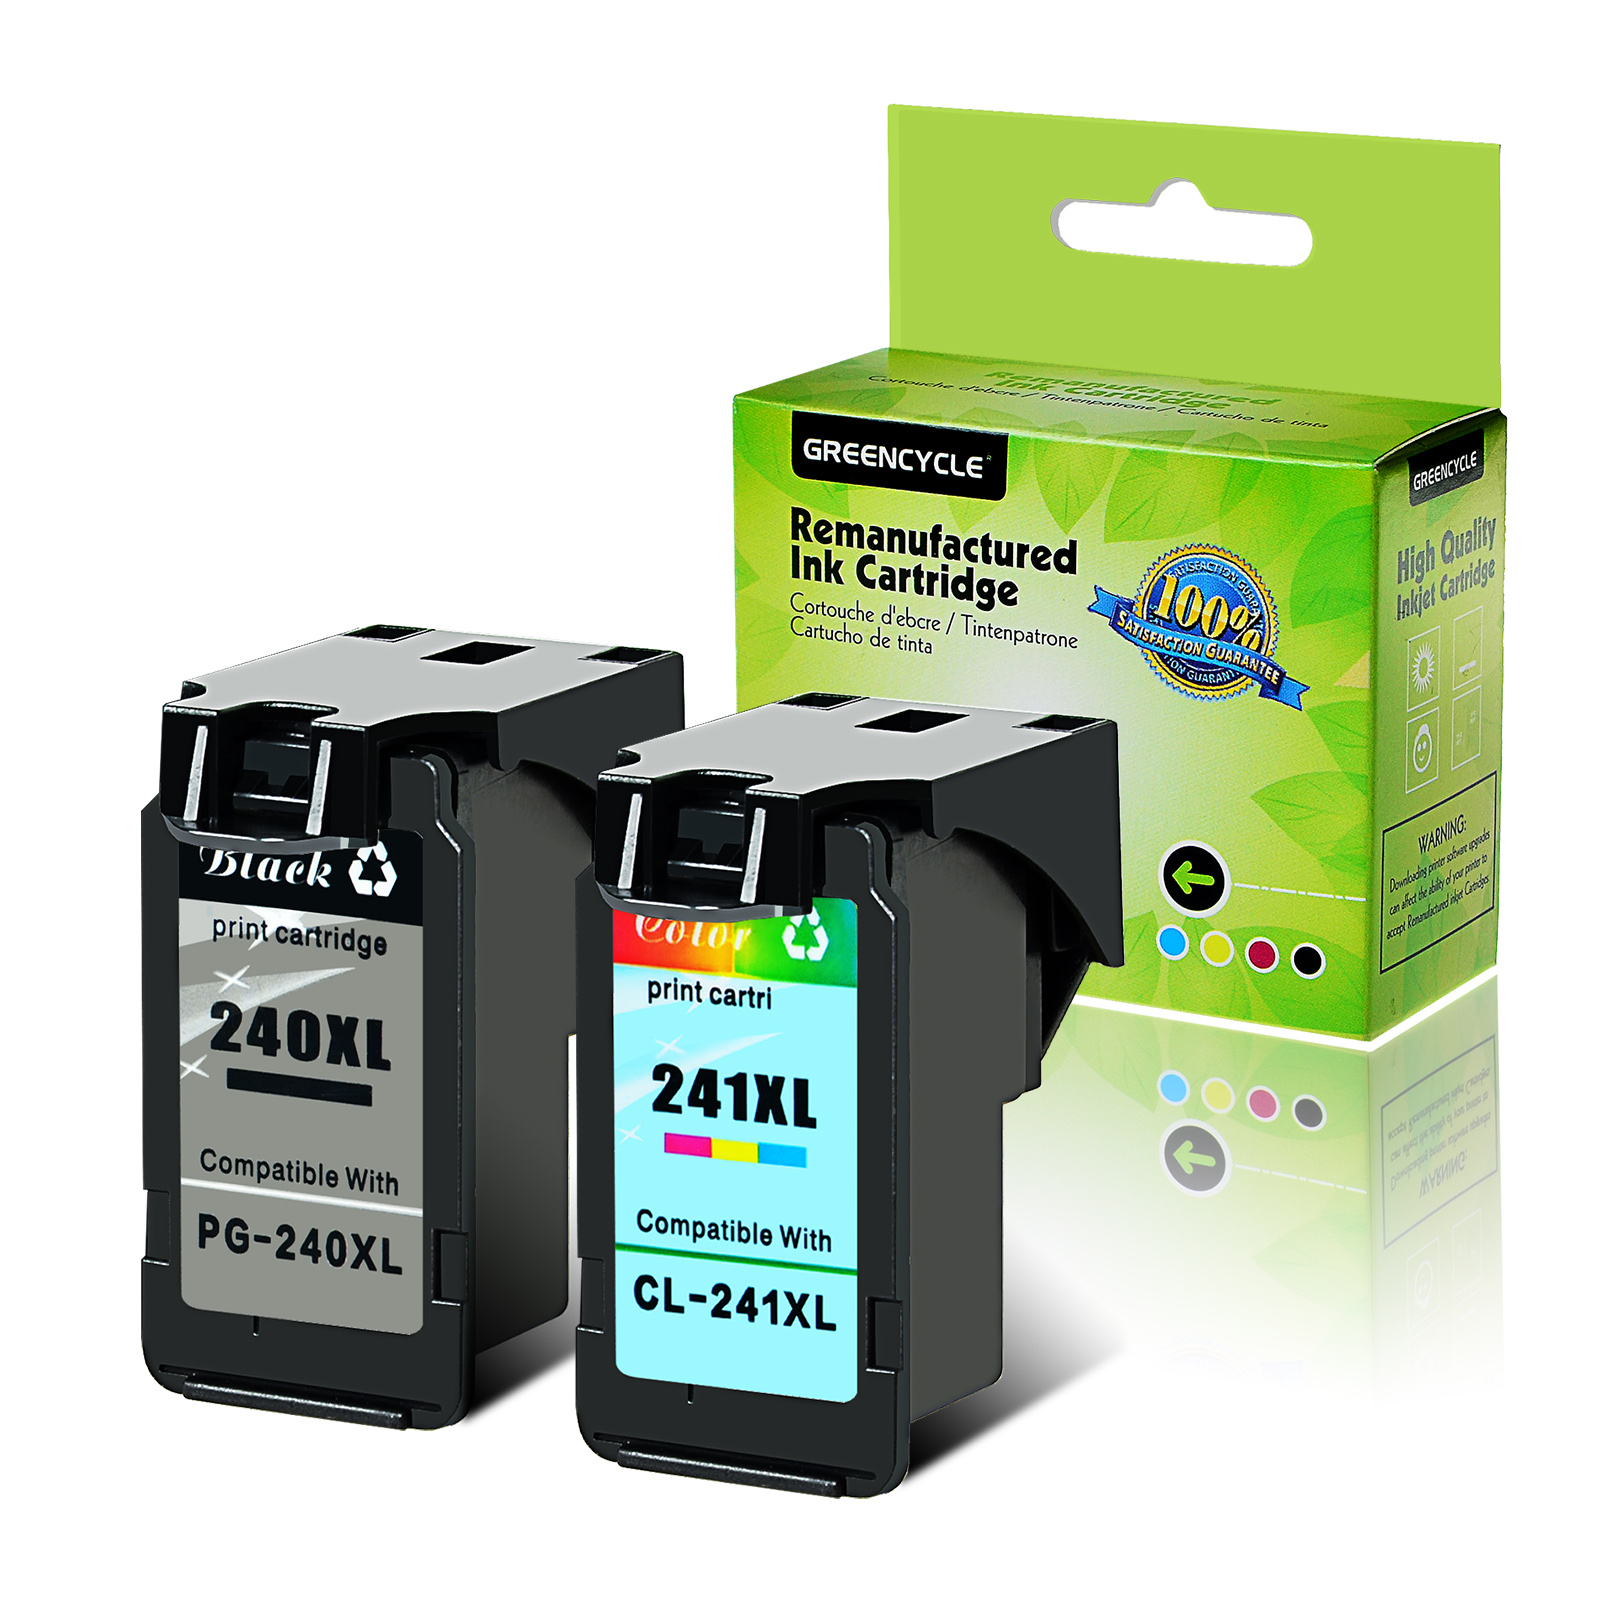 Combo Black and Color Ink Cartridge 6 Pack Best Ink Remanufactured for Canon PG240XL CL241XL 4 Black + 2 Color PG-240XL CL-241XL Used in Canon Pixma MG3220 MG3222 MG3520 MX432 MX439 MX452 MX459